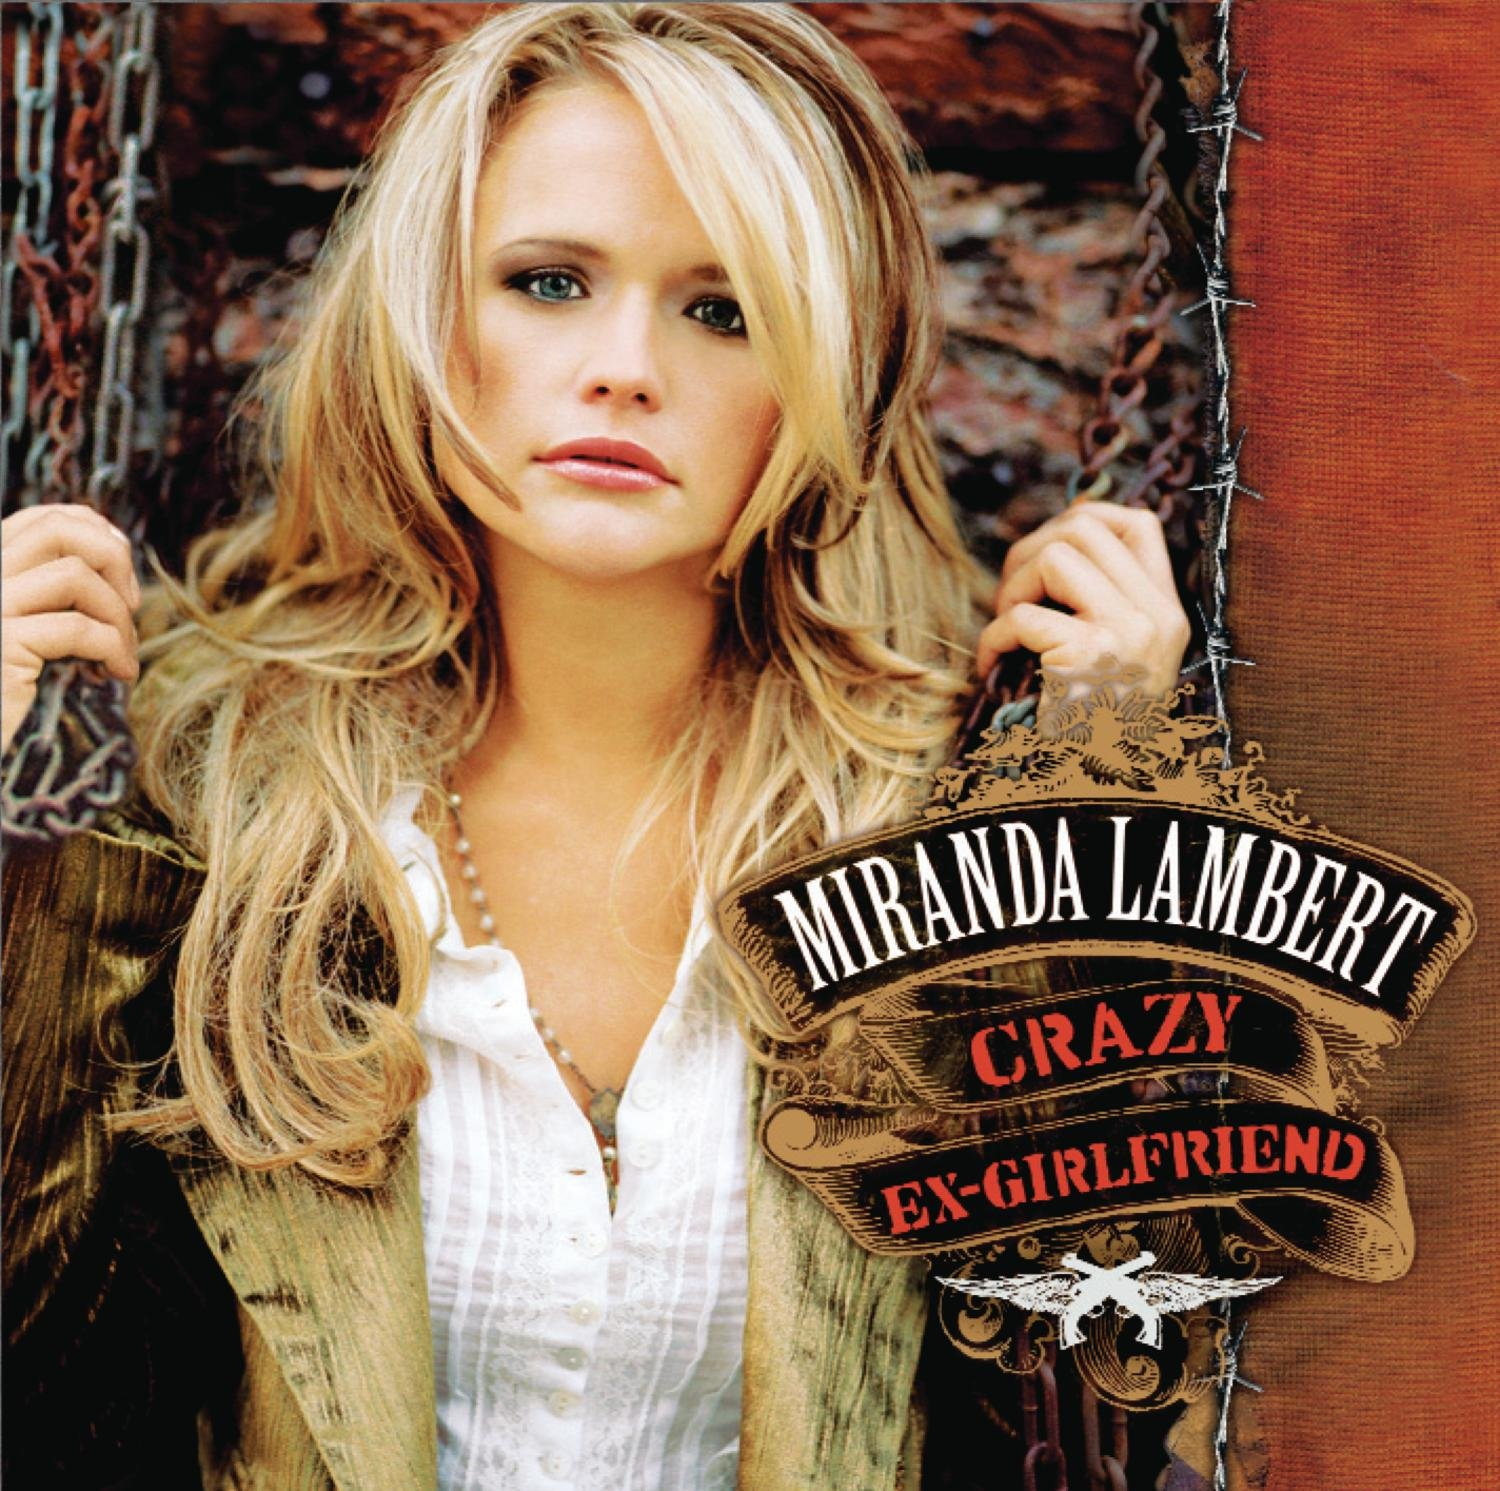 Miranda Lambert, Crazy Ex-Girlfriend